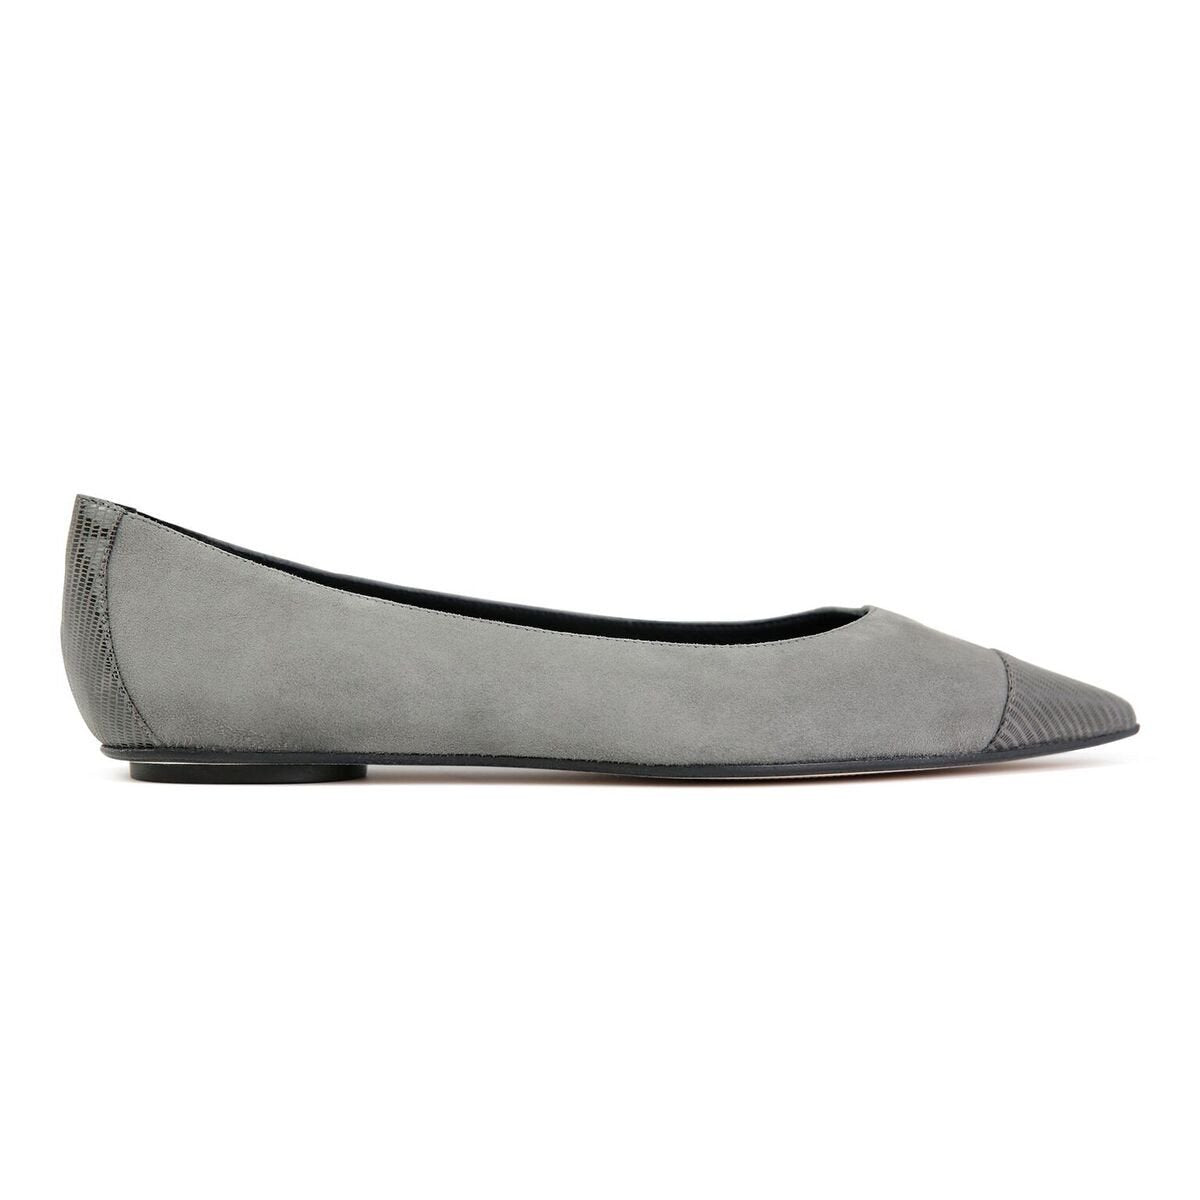 COMO - Velukid Anthracite + Varanus, VIAJIYU - Women's Hand Made Sustainable Luxury Shoes. Made in Italy. Made to Order.